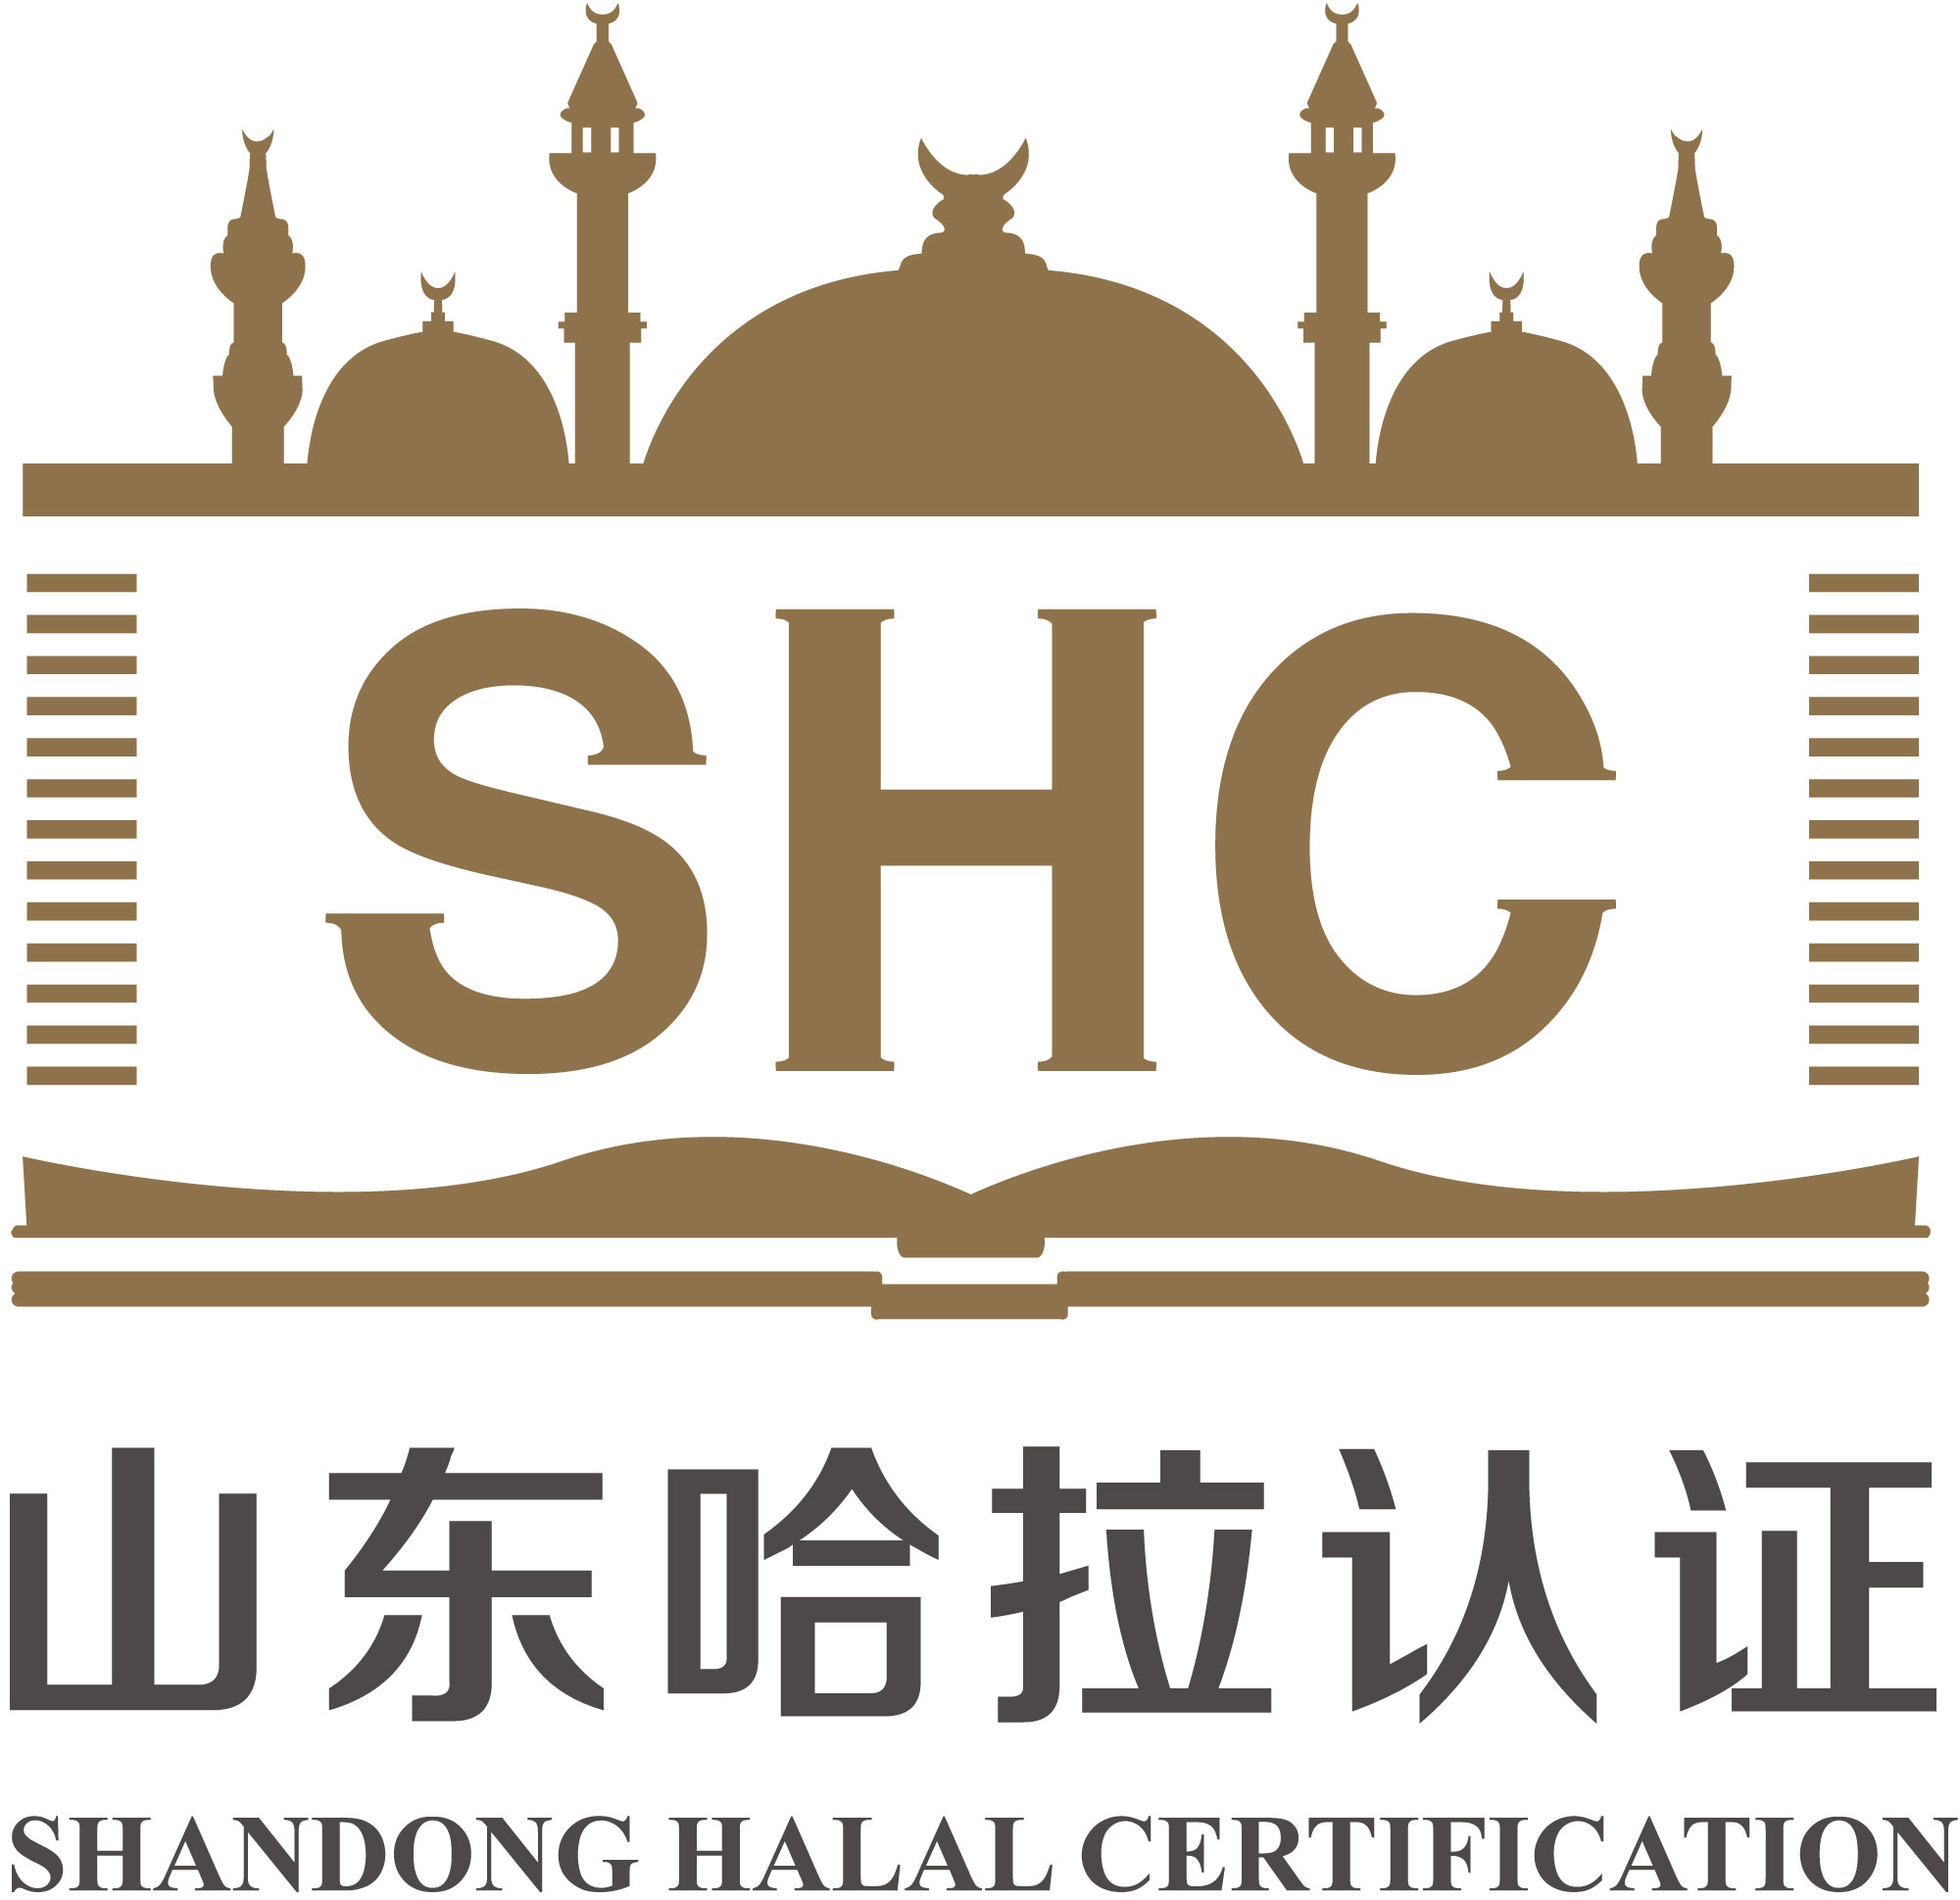 Gcc accreditation center shandong halal certification service xflitez Choice Image